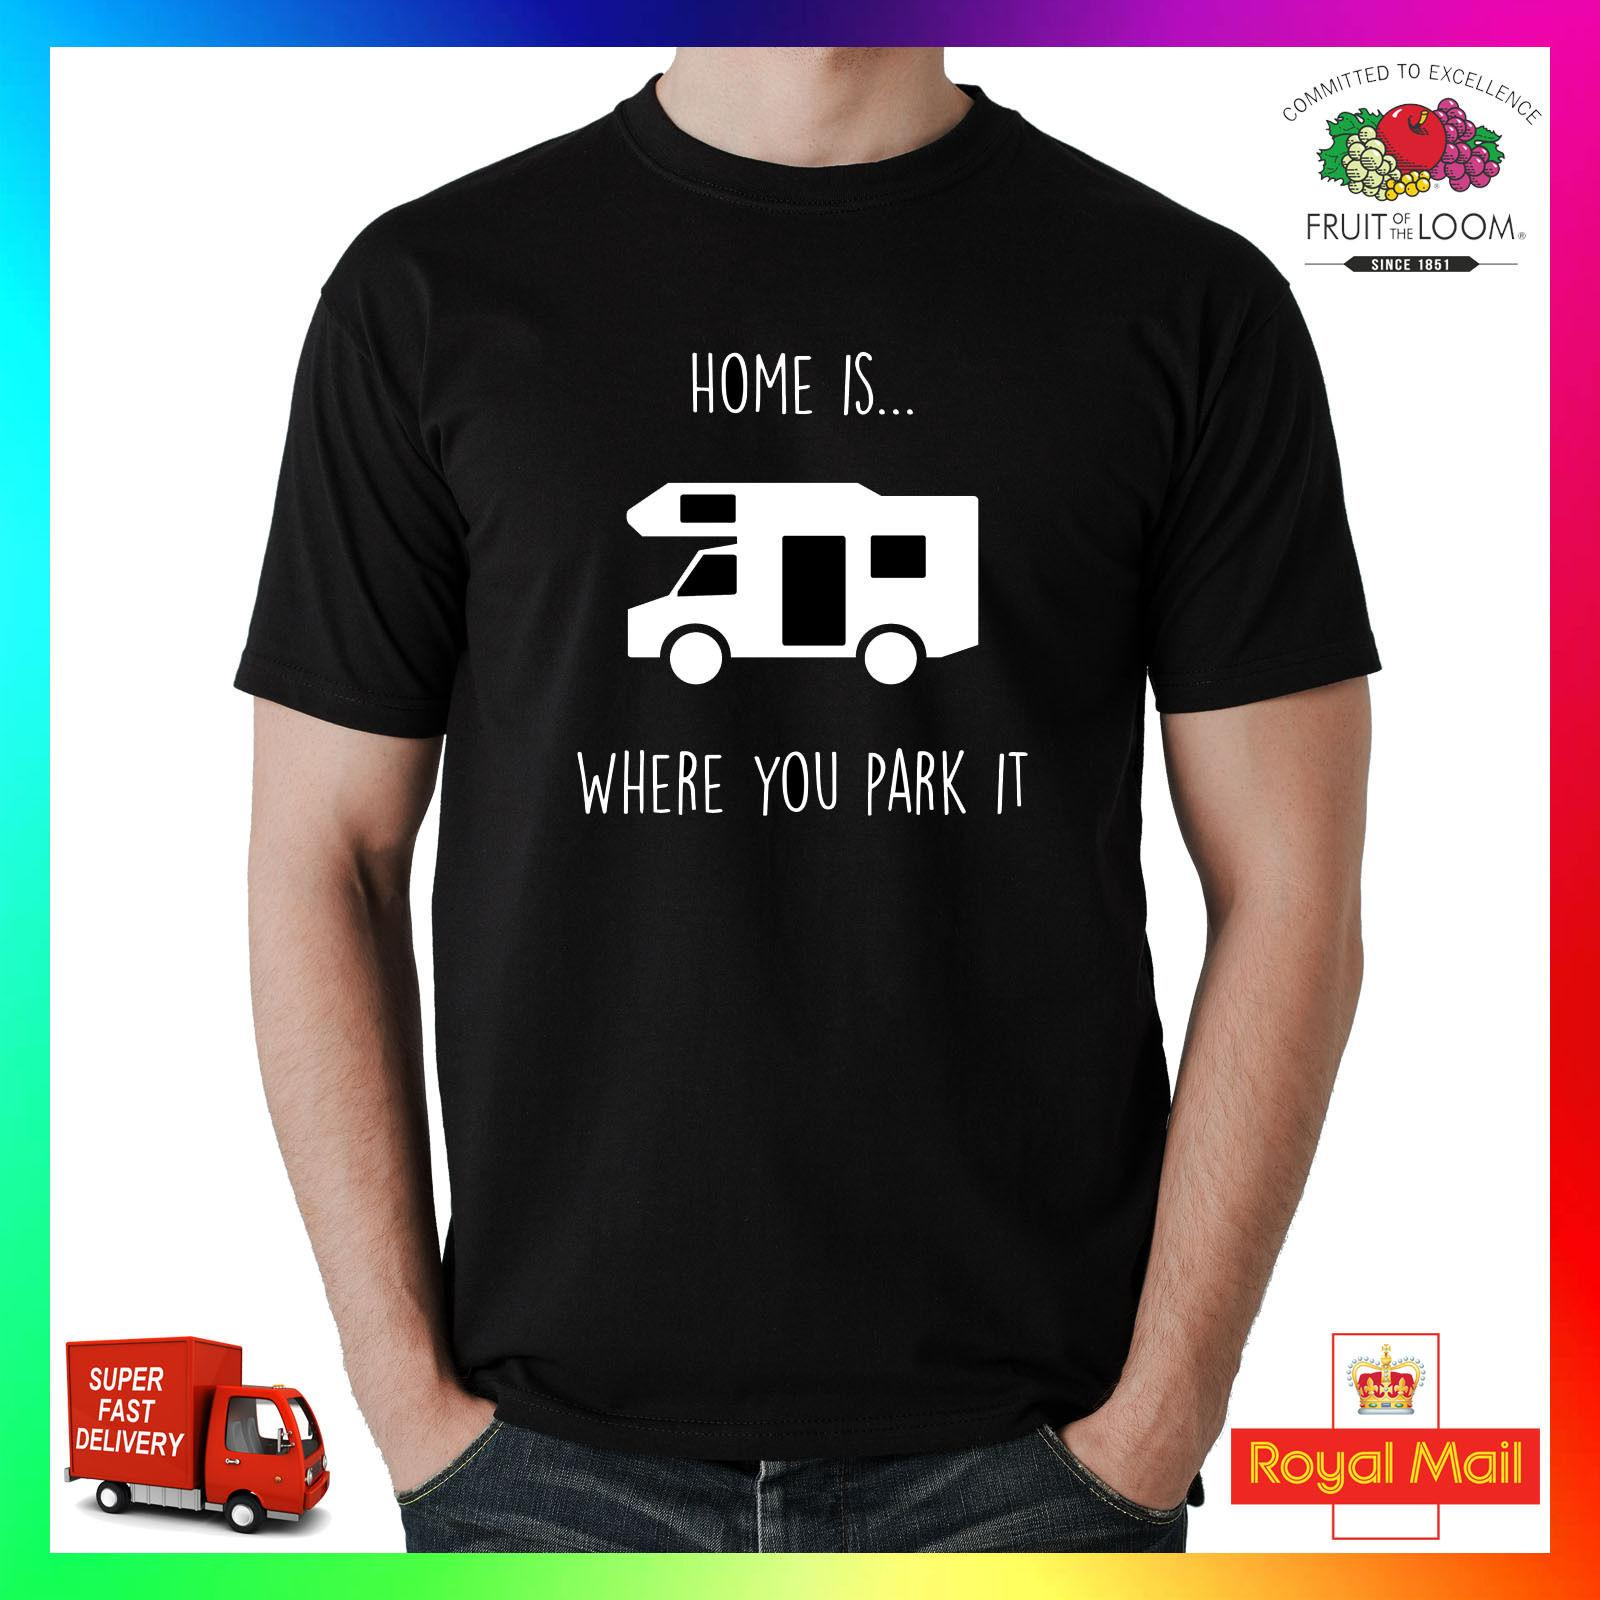 2a07e297 Home Is Where You Park T Shirt Tee TShirt Funny Gift Camper Van Men Caravan  RV Worlds Funniest T Shirts Cool Tee Shirts Cheap From Dxpstore33, .